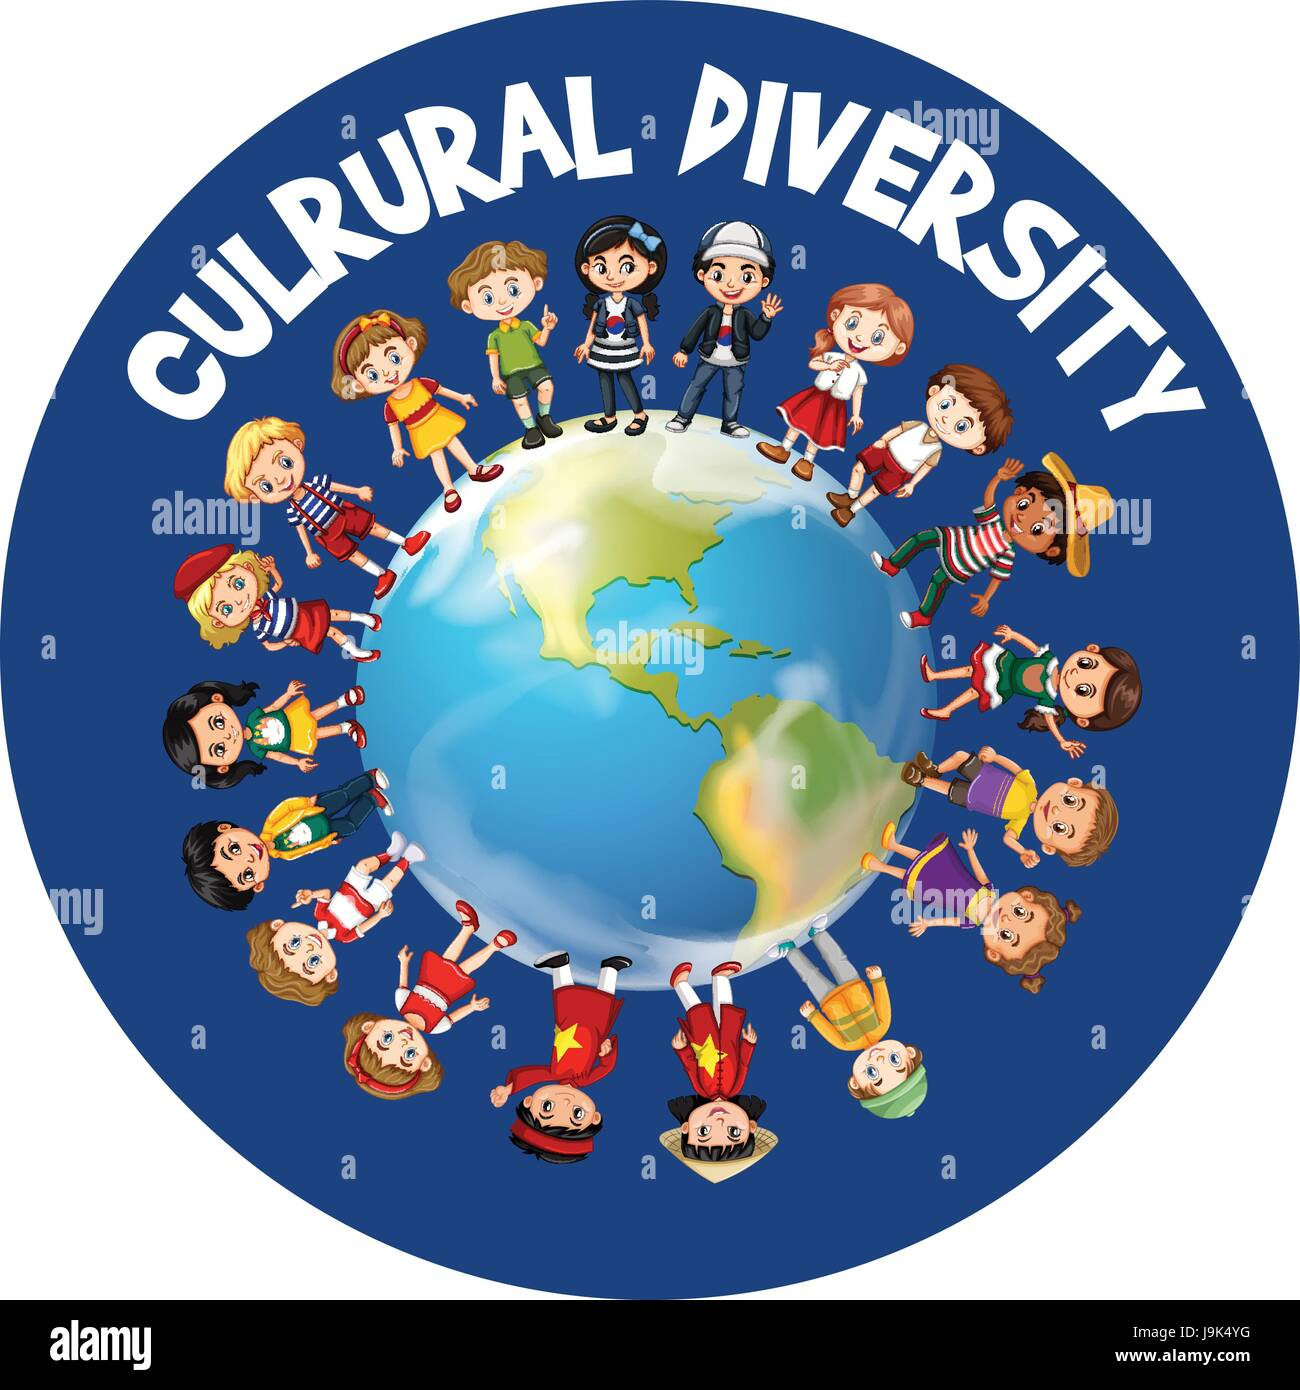 cultural diversity in the global world Culture and globalization  cultural impacts of globalization  -- maude barlow, the global monoculture, earth island journal.